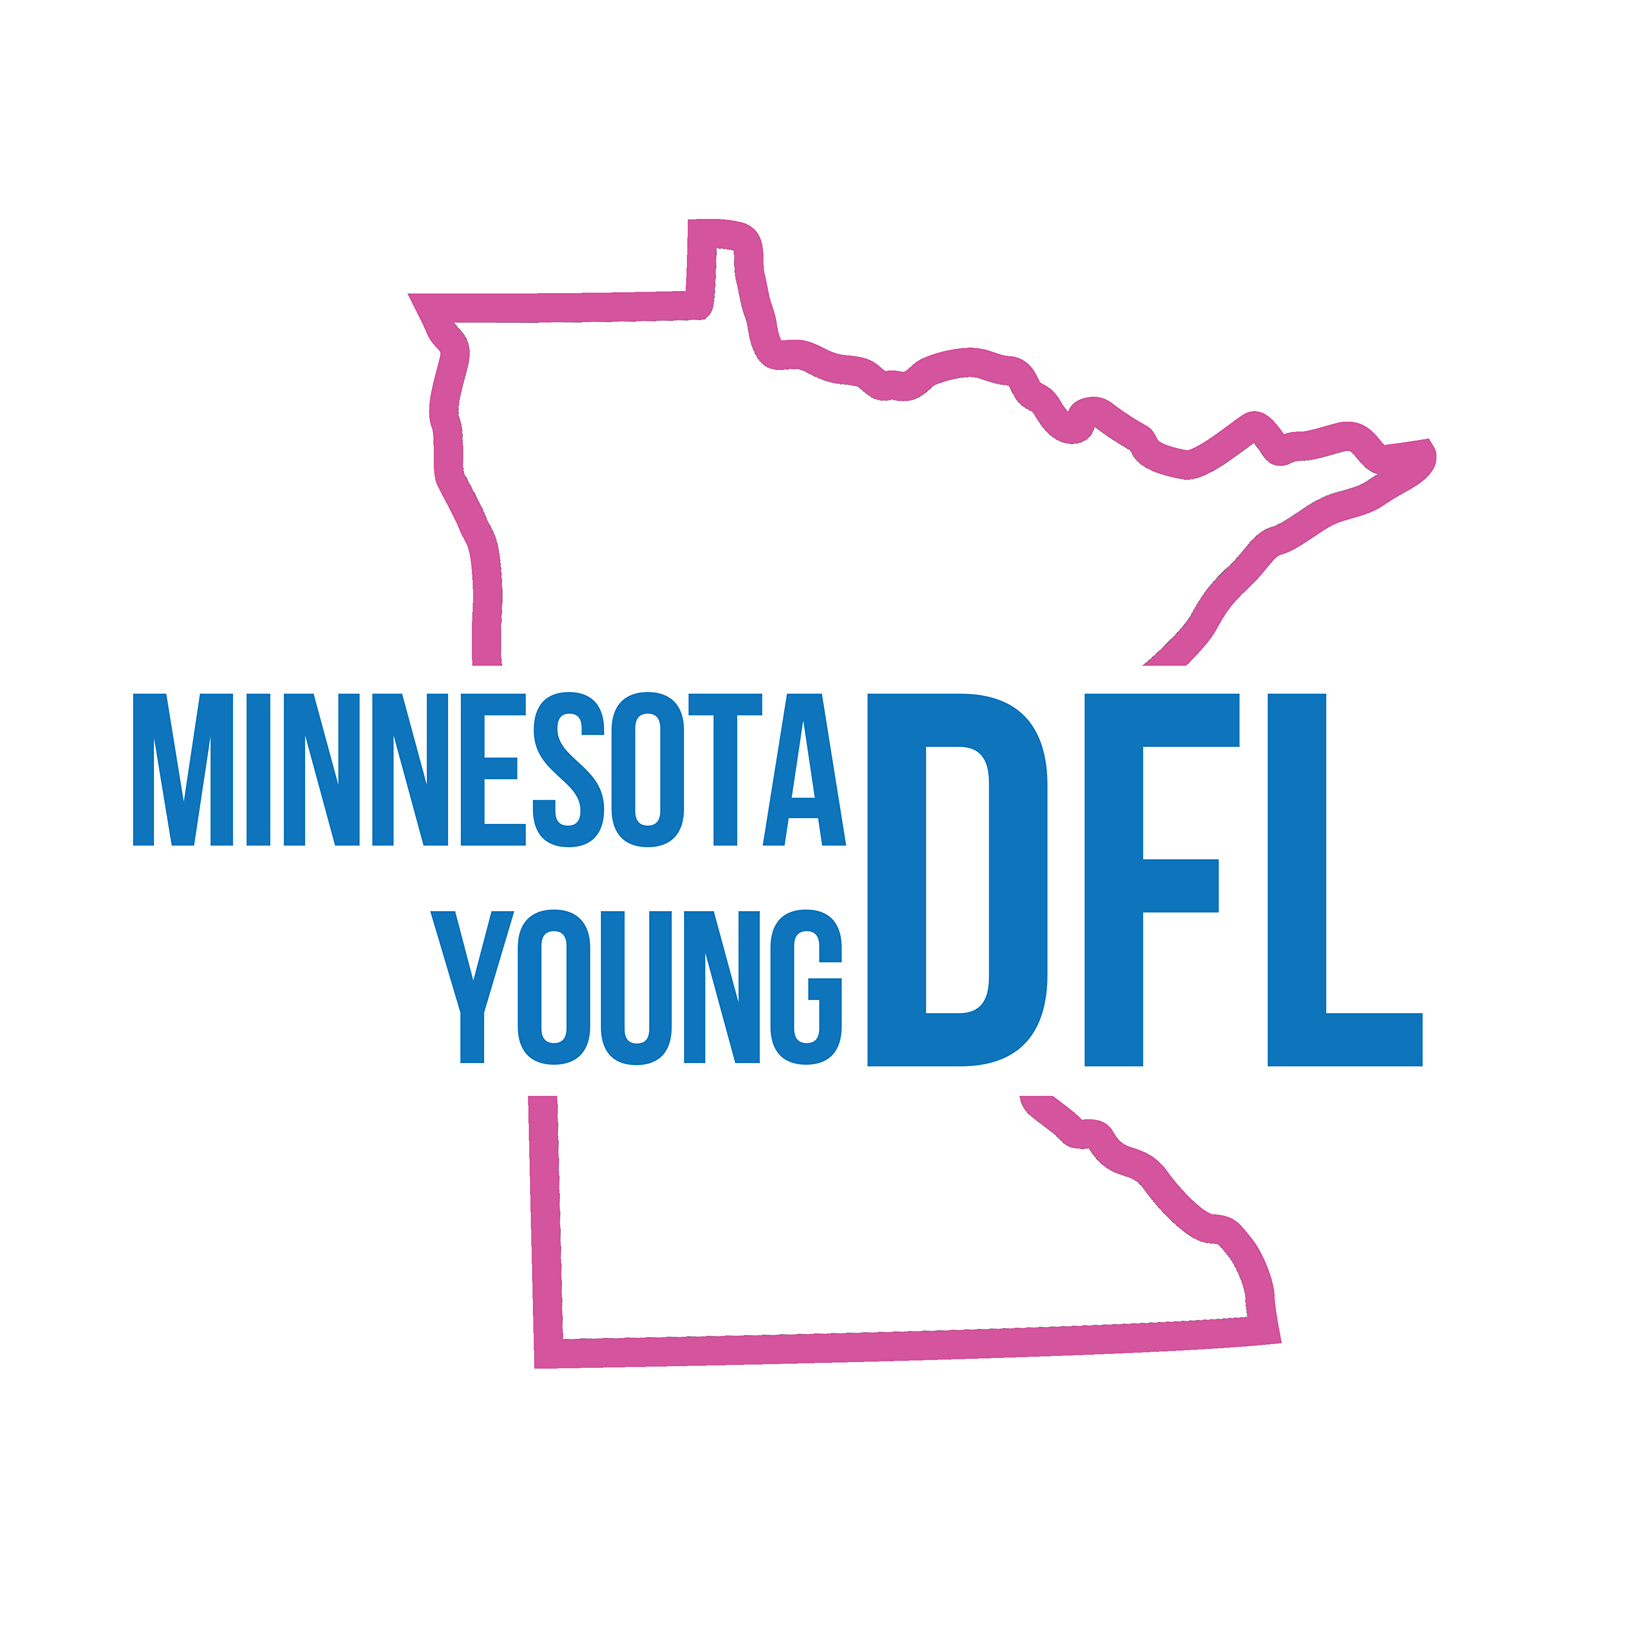 The Minnesota Young DFL (MYDFL) is proud to endorse Irene Fernando for Hennepin County Commissioner - District 2! Not only is Irene a member of MYDFL, she will be the first person of color to sit on the county board. She has dedicated her life to building power with young people and will take this experience to the county. Irene will make an outstanding commissioner who will center the voices of those most often pushed to the margins. We look forward to working with her to win in November and beyond.